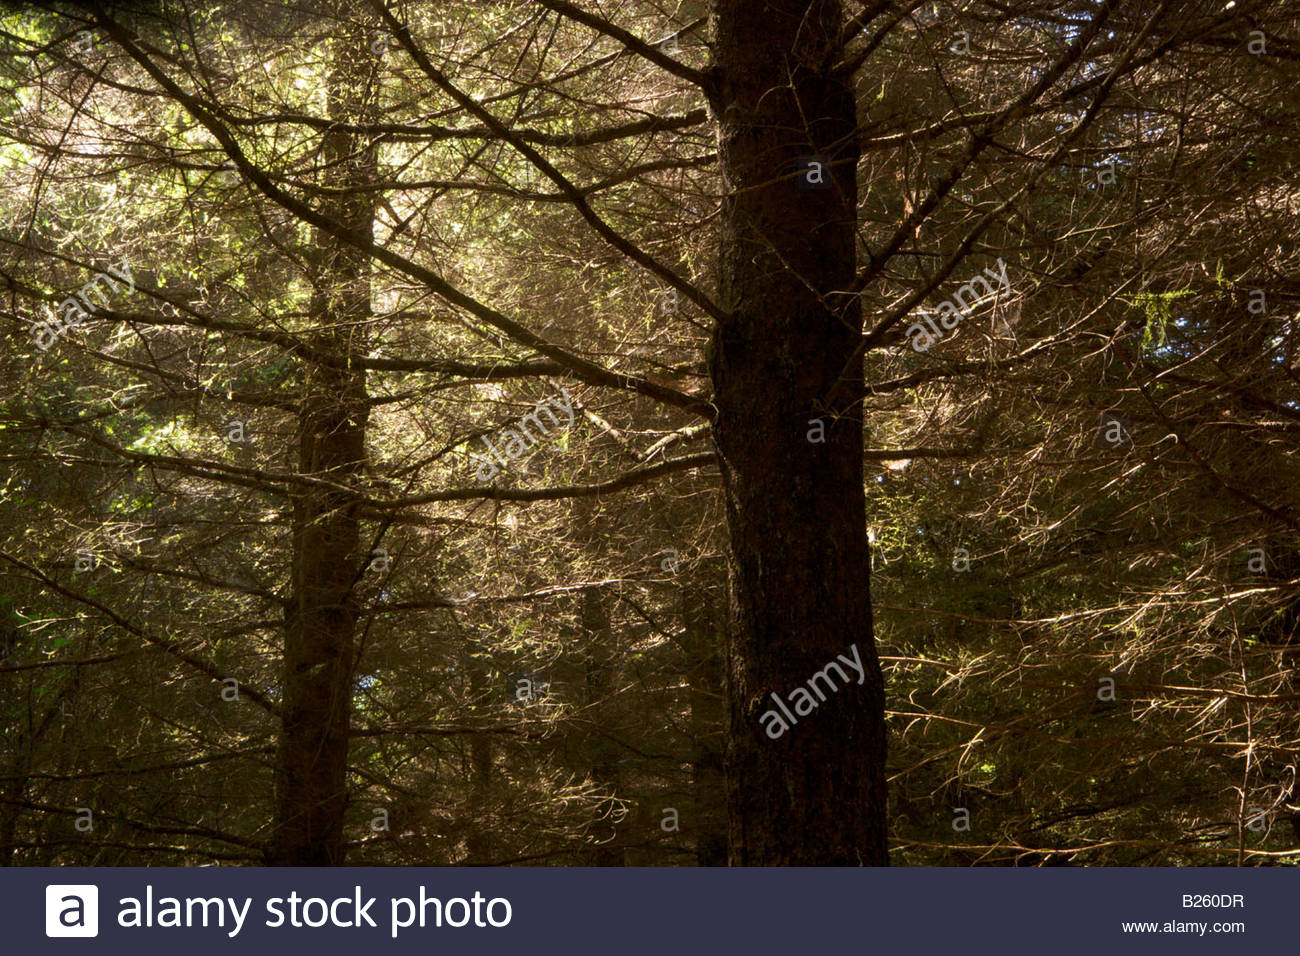 2nd Growth Redwood Trees Sequoia semperivens Headwaters Forest Reserve California - Stock Image